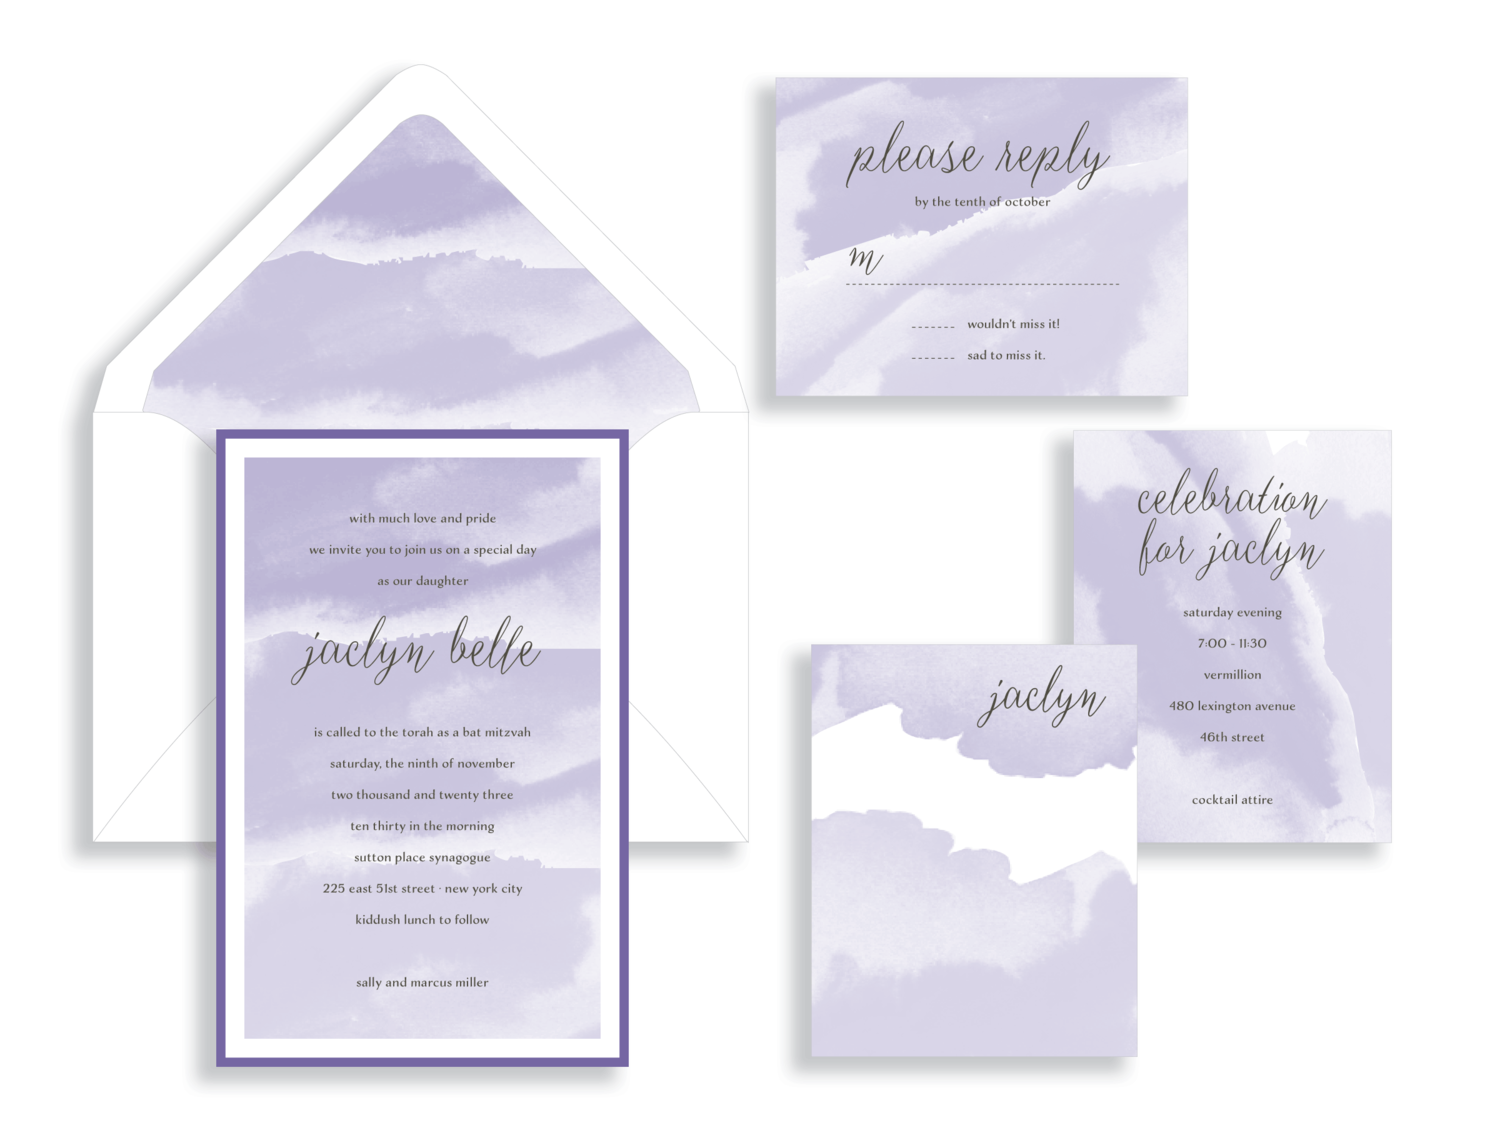 Jaclyn lavender watercolor bat mitzvah invitation in Fairfax Virginia from Staccato with personalized service, great selection!